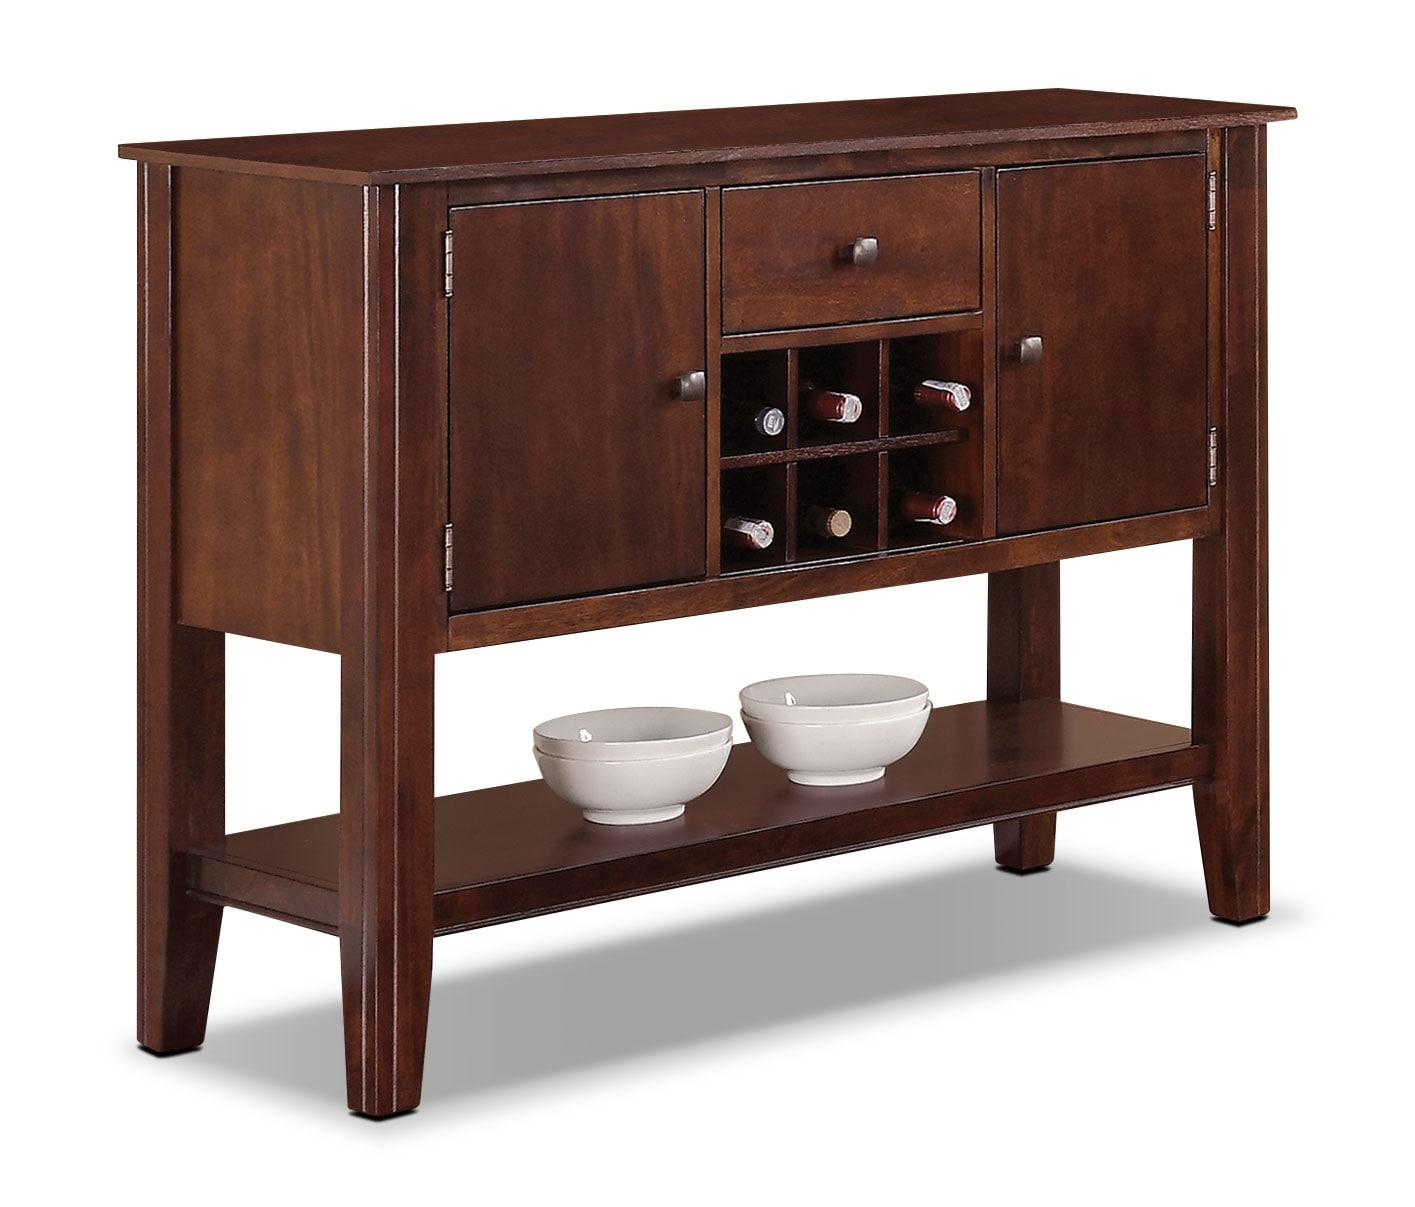 Dining Room Furniture - Holland Server